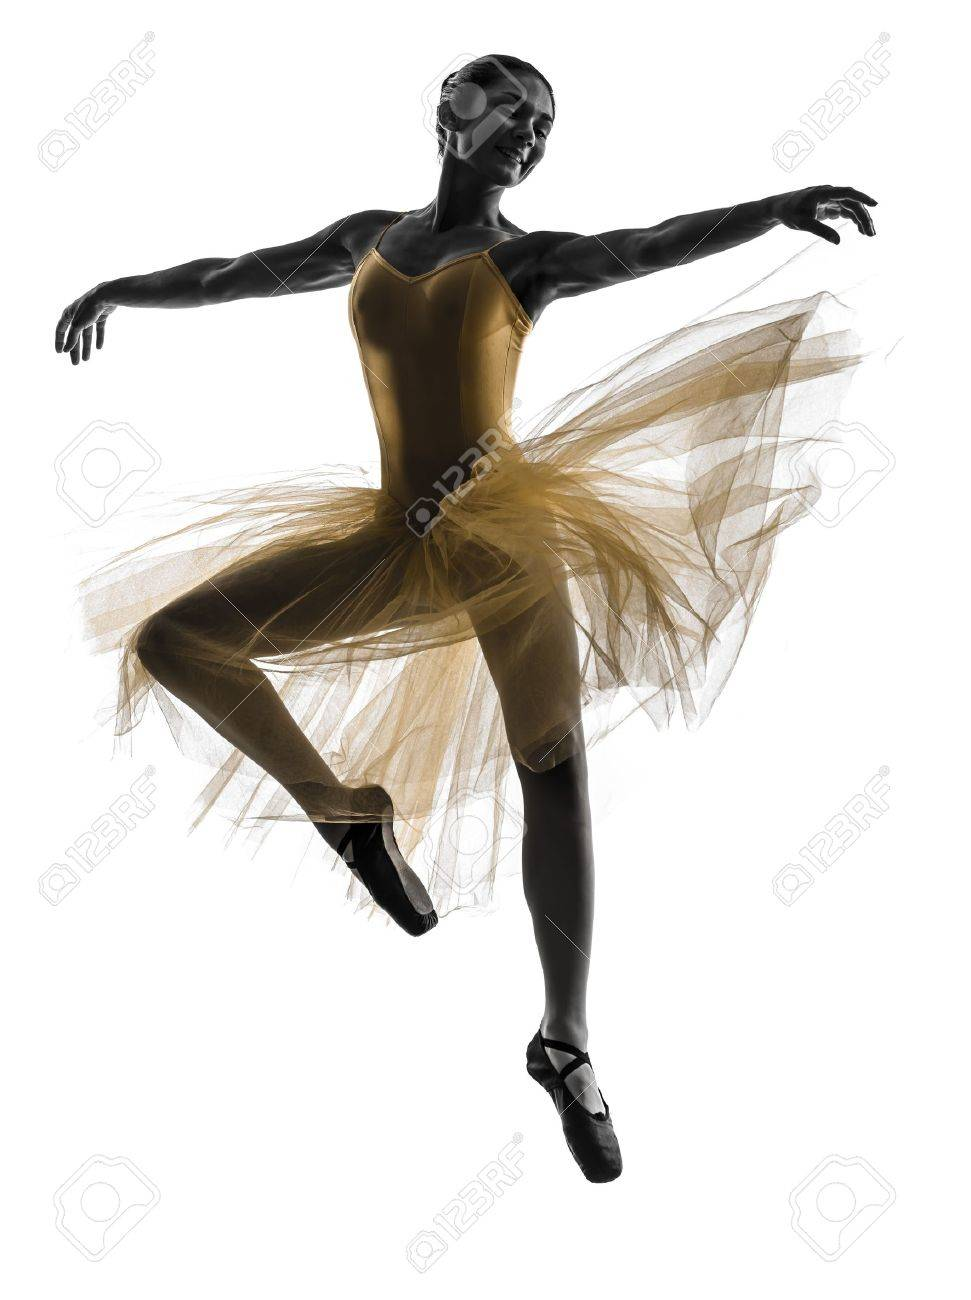 one  woman   ballerina ballet dancer dancing in silhouette on white background Stock Photo - 21283633